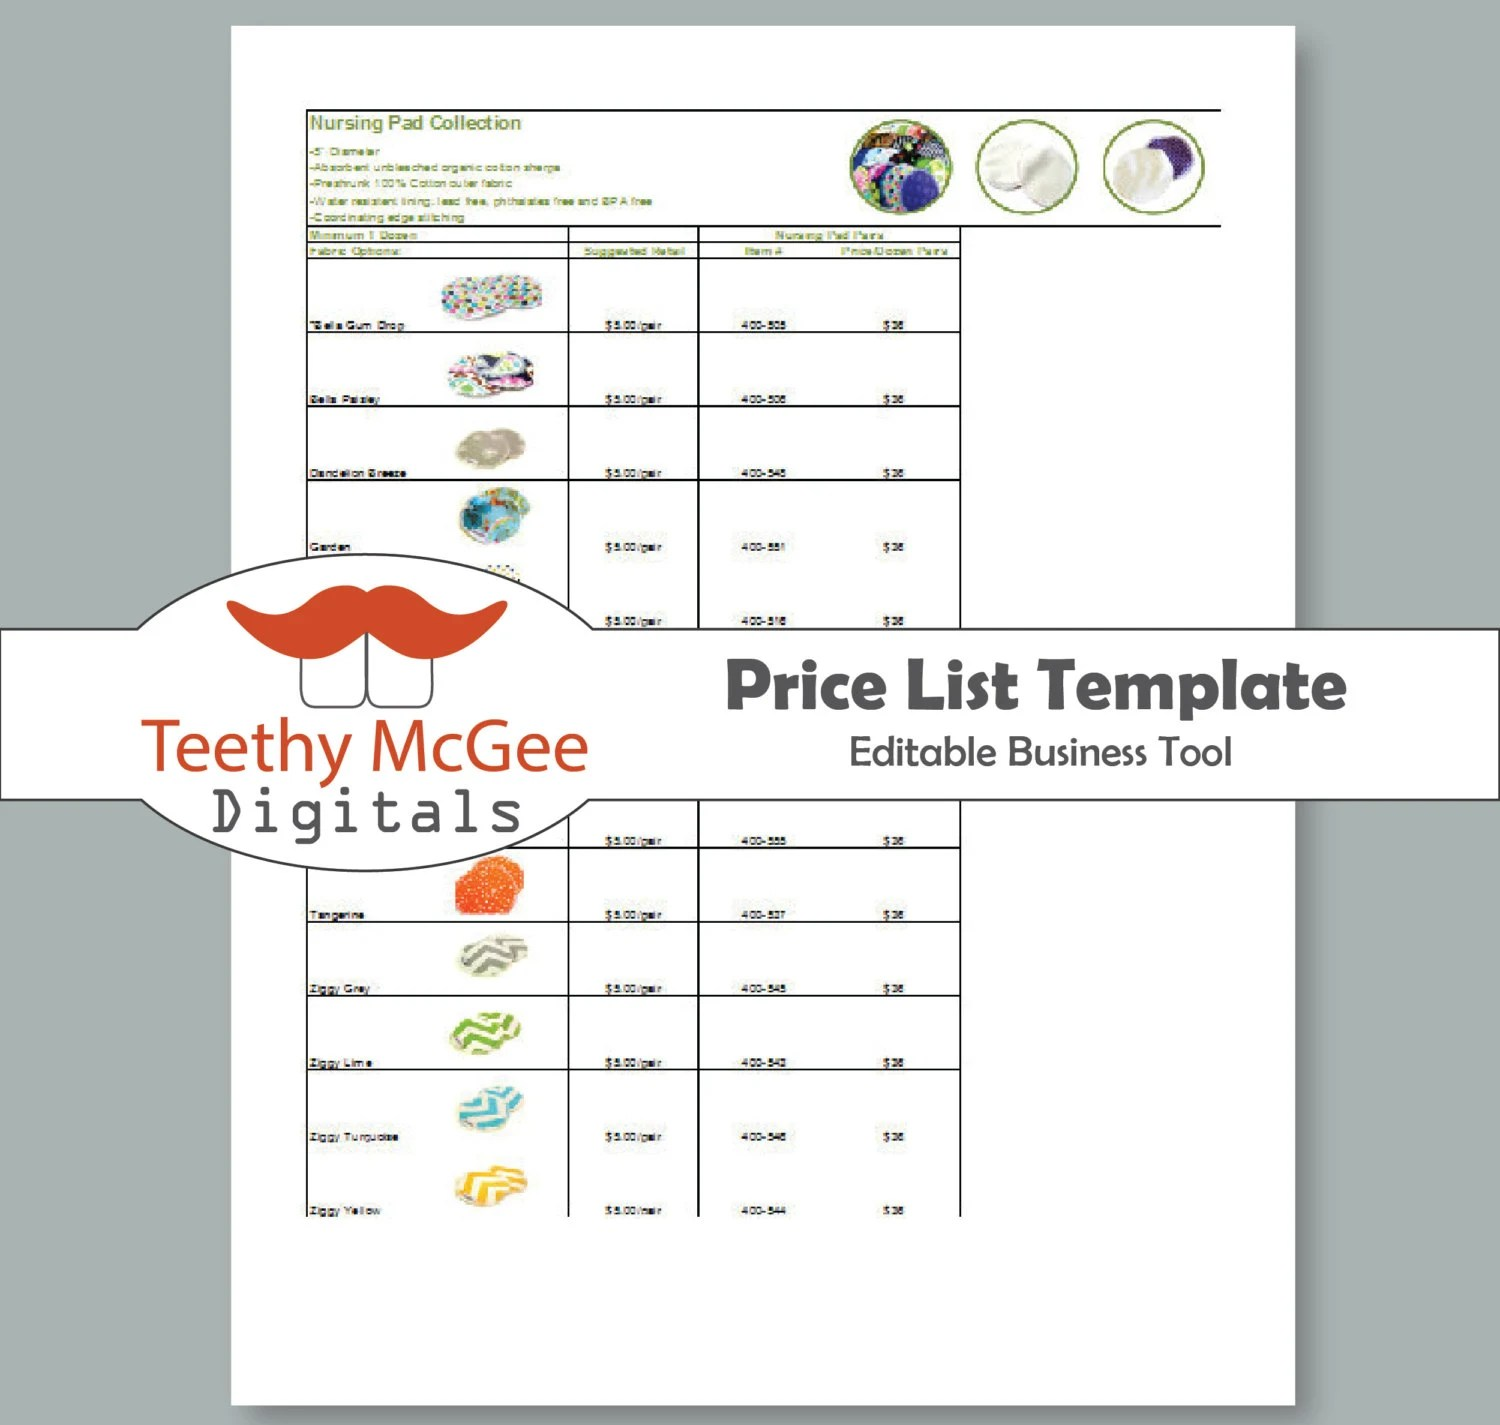 Price List Template Instant Download Editable for Wholesale and